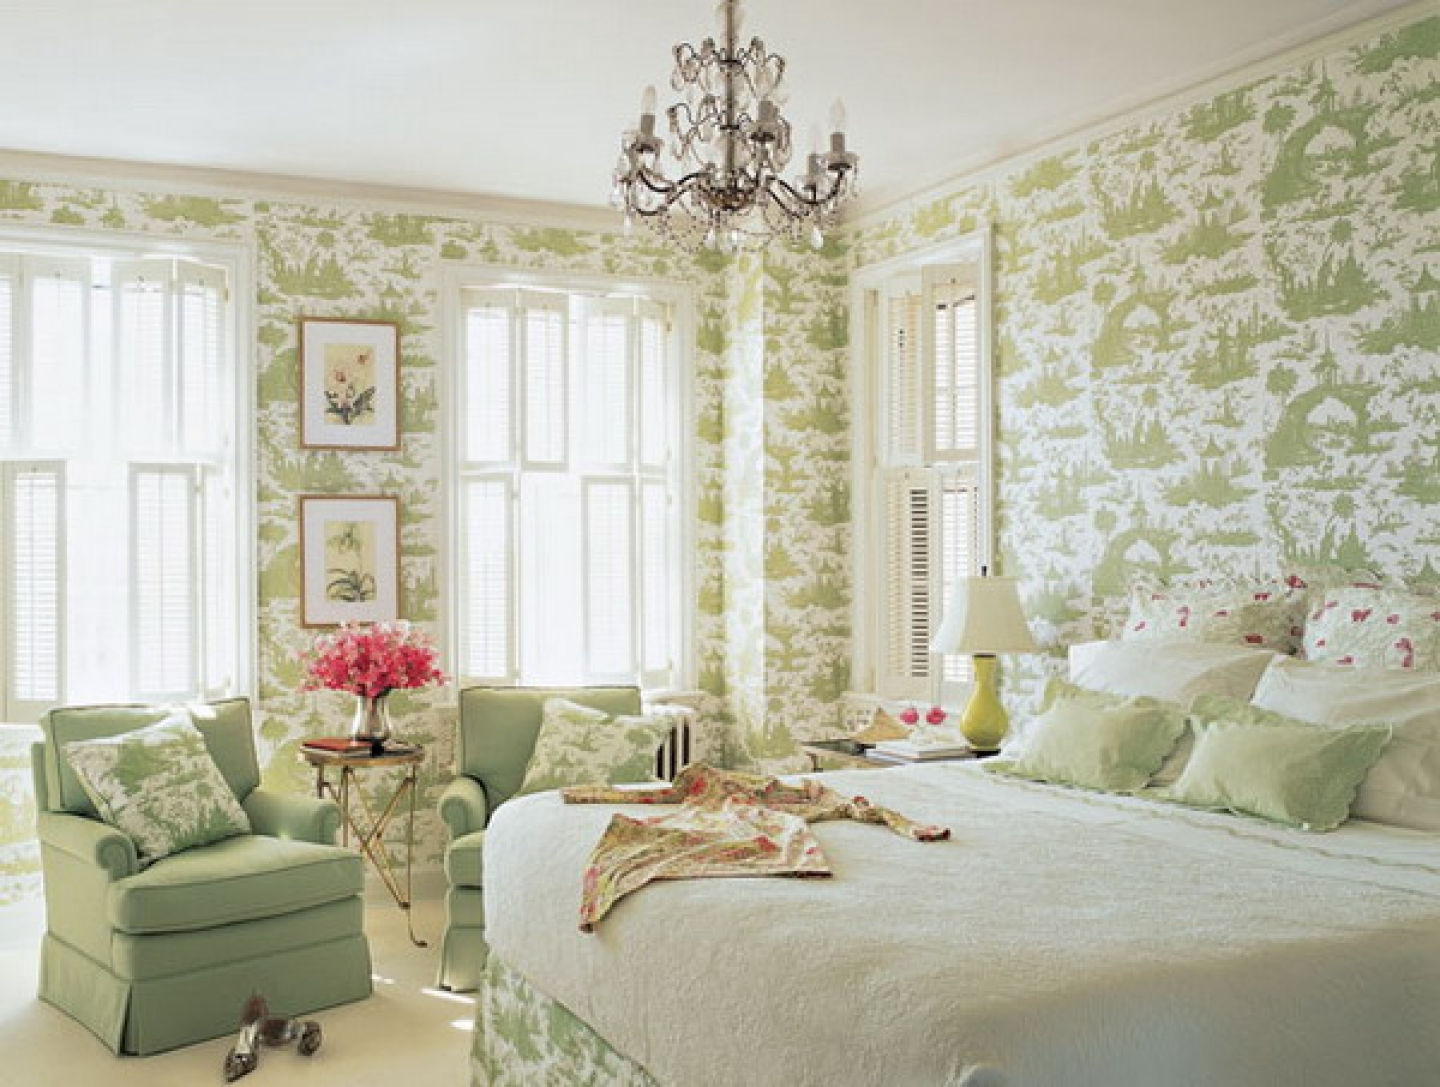 Romantic bedroom wallpaper decorating ideas picture amazing 1440x1087